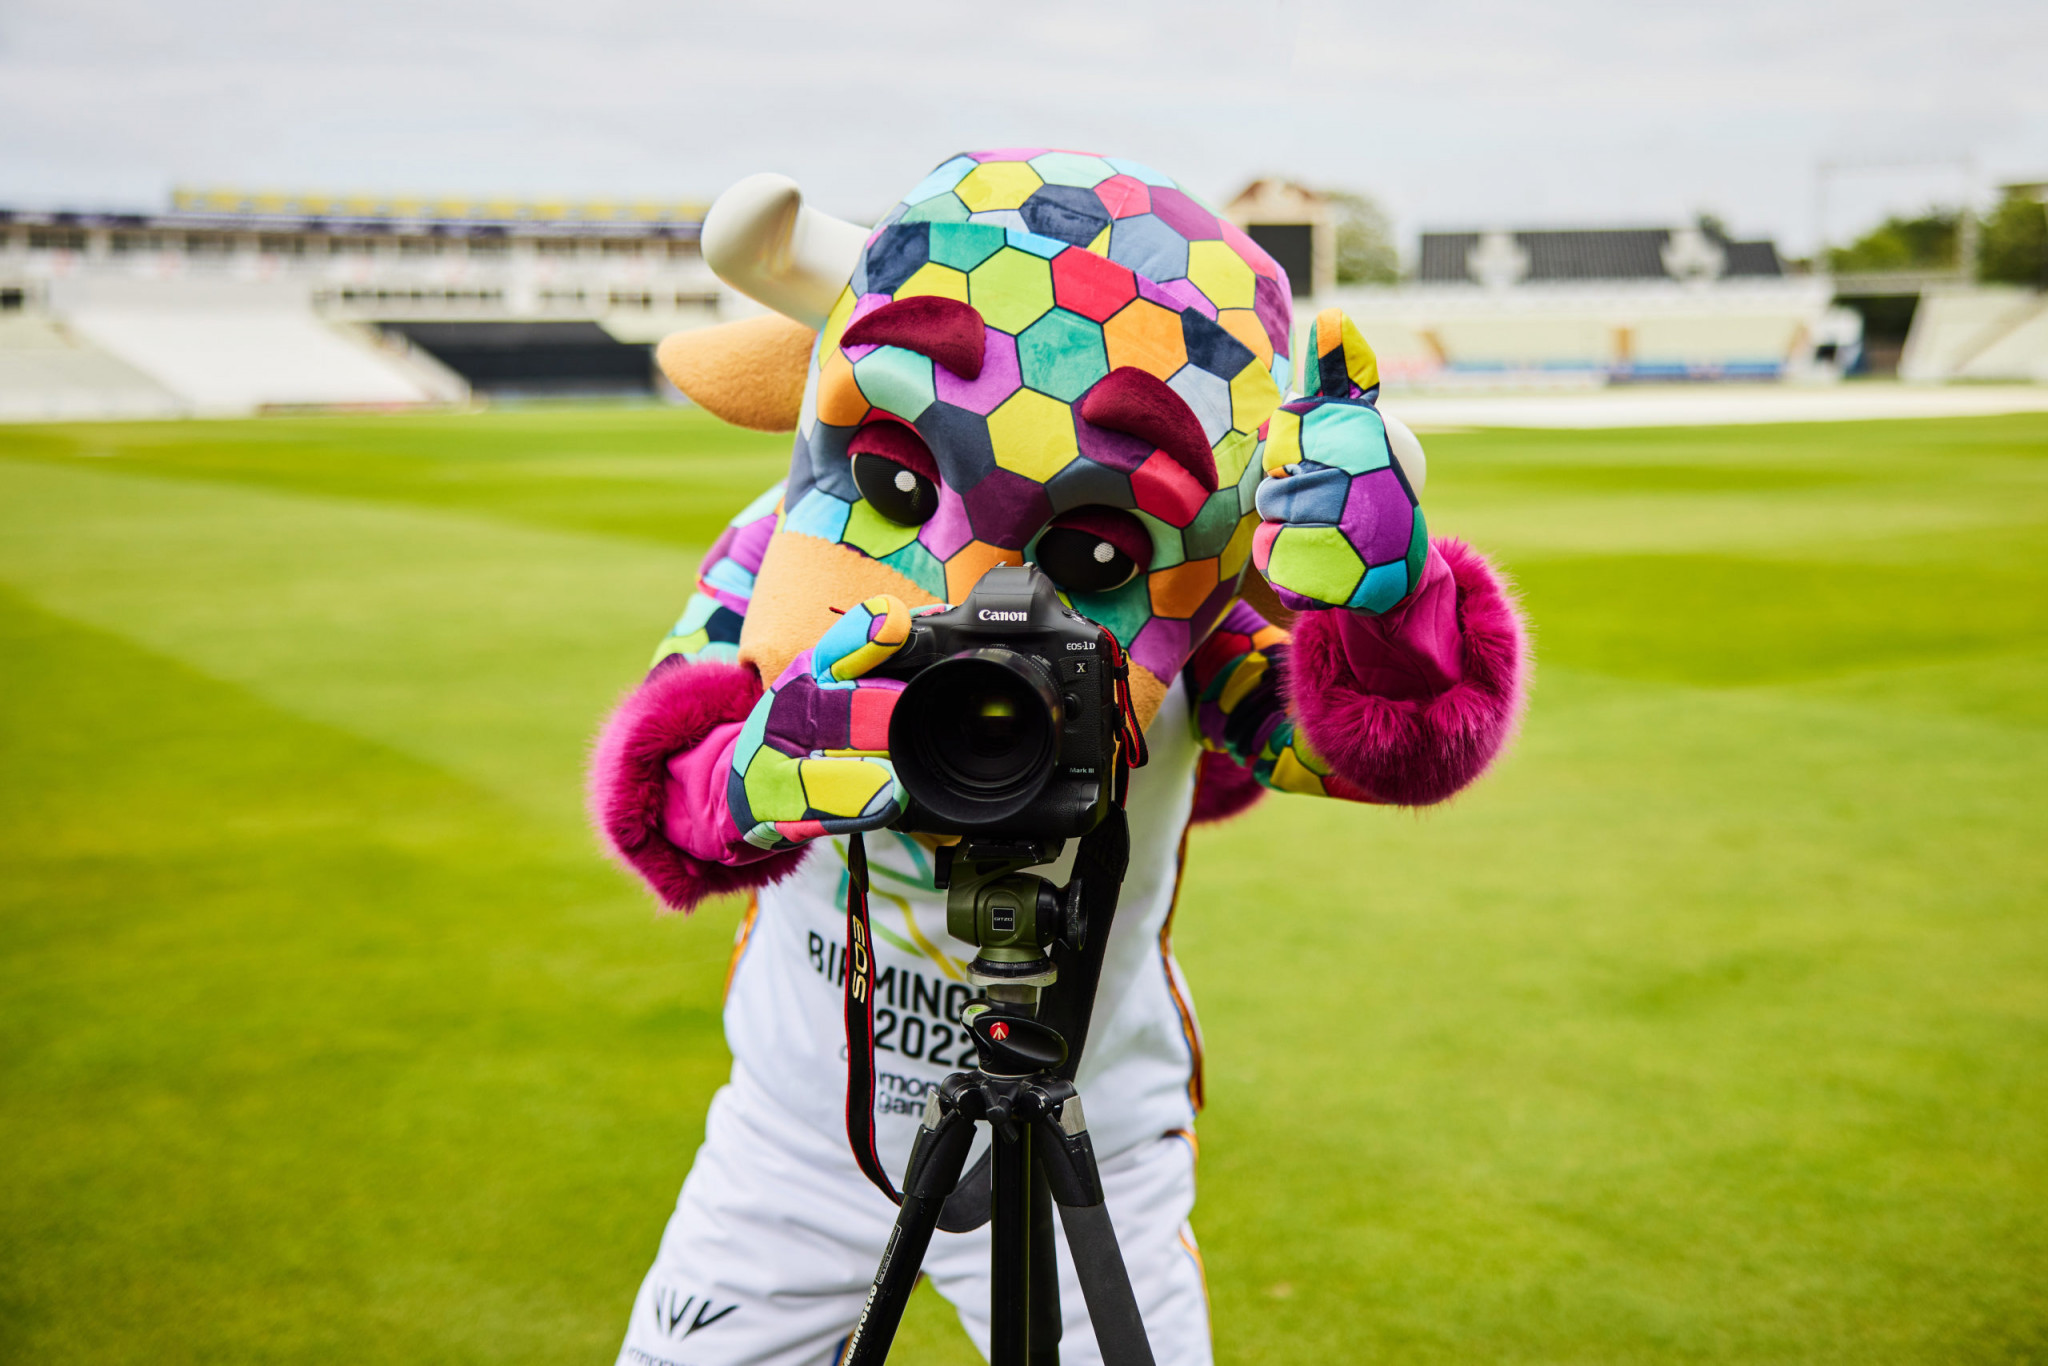 Canon is the official image supporter of the Birmingham 2022 Commonwealth Games ©Birmingham 2022